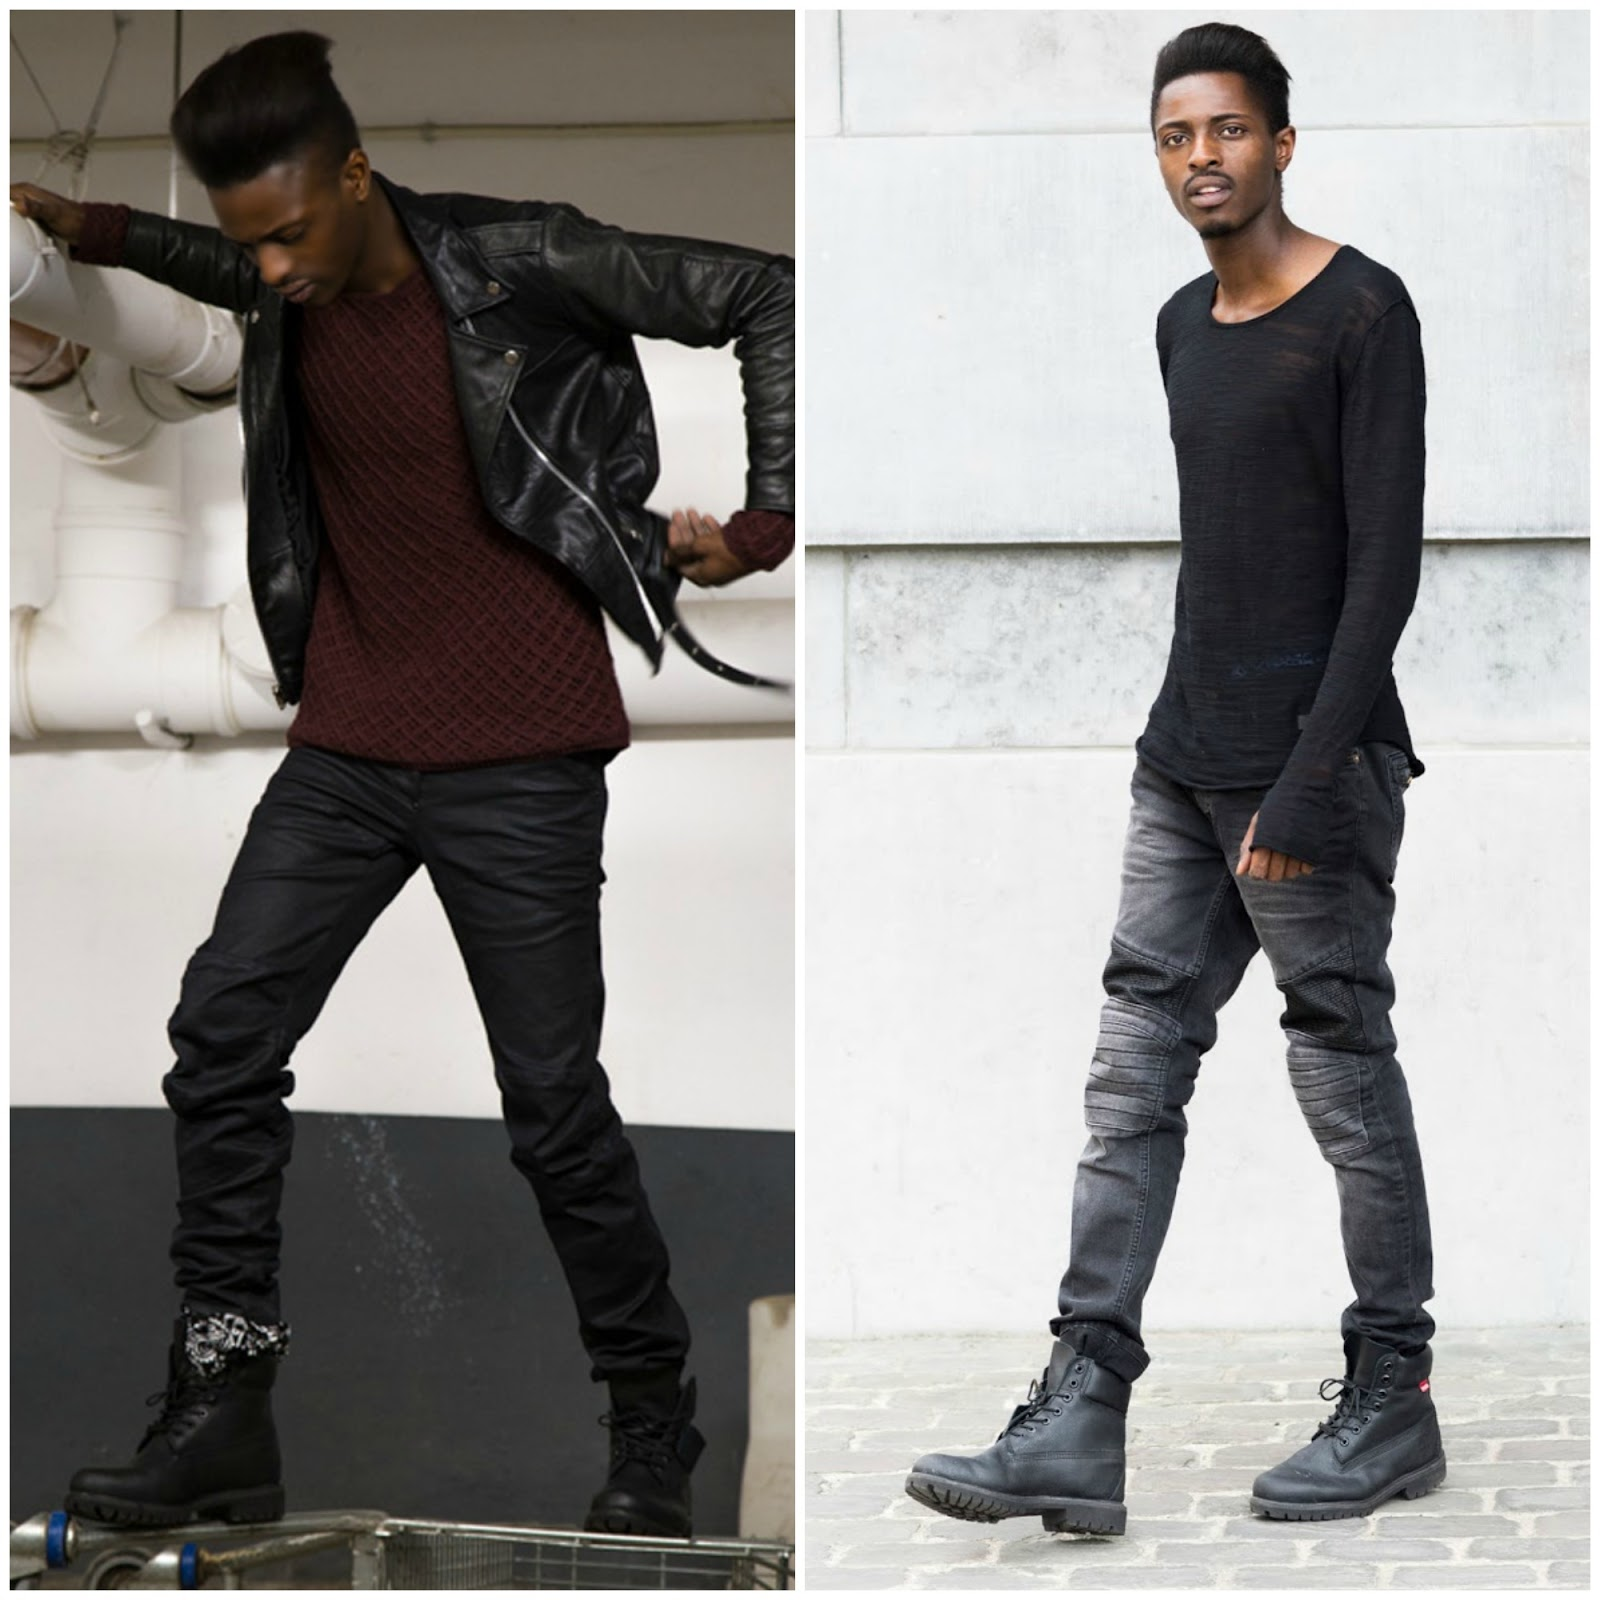 5 personal style tips on how to wear timberland boots